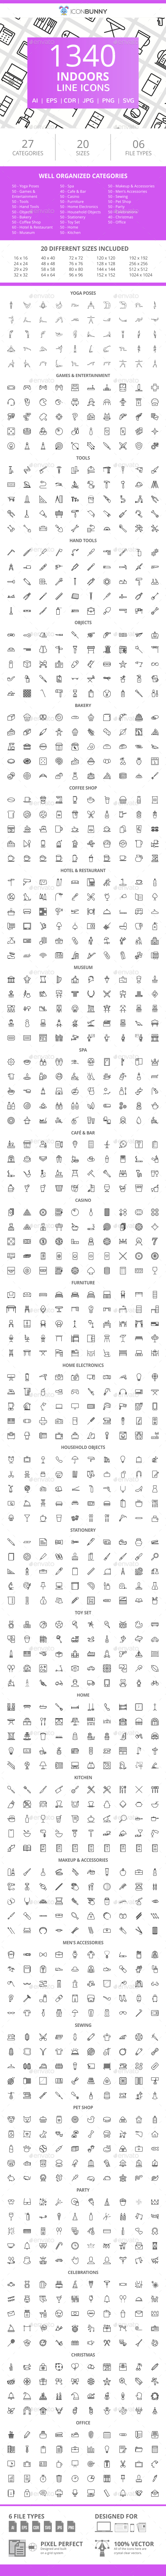 1340 Indoors Line Icons - Icons